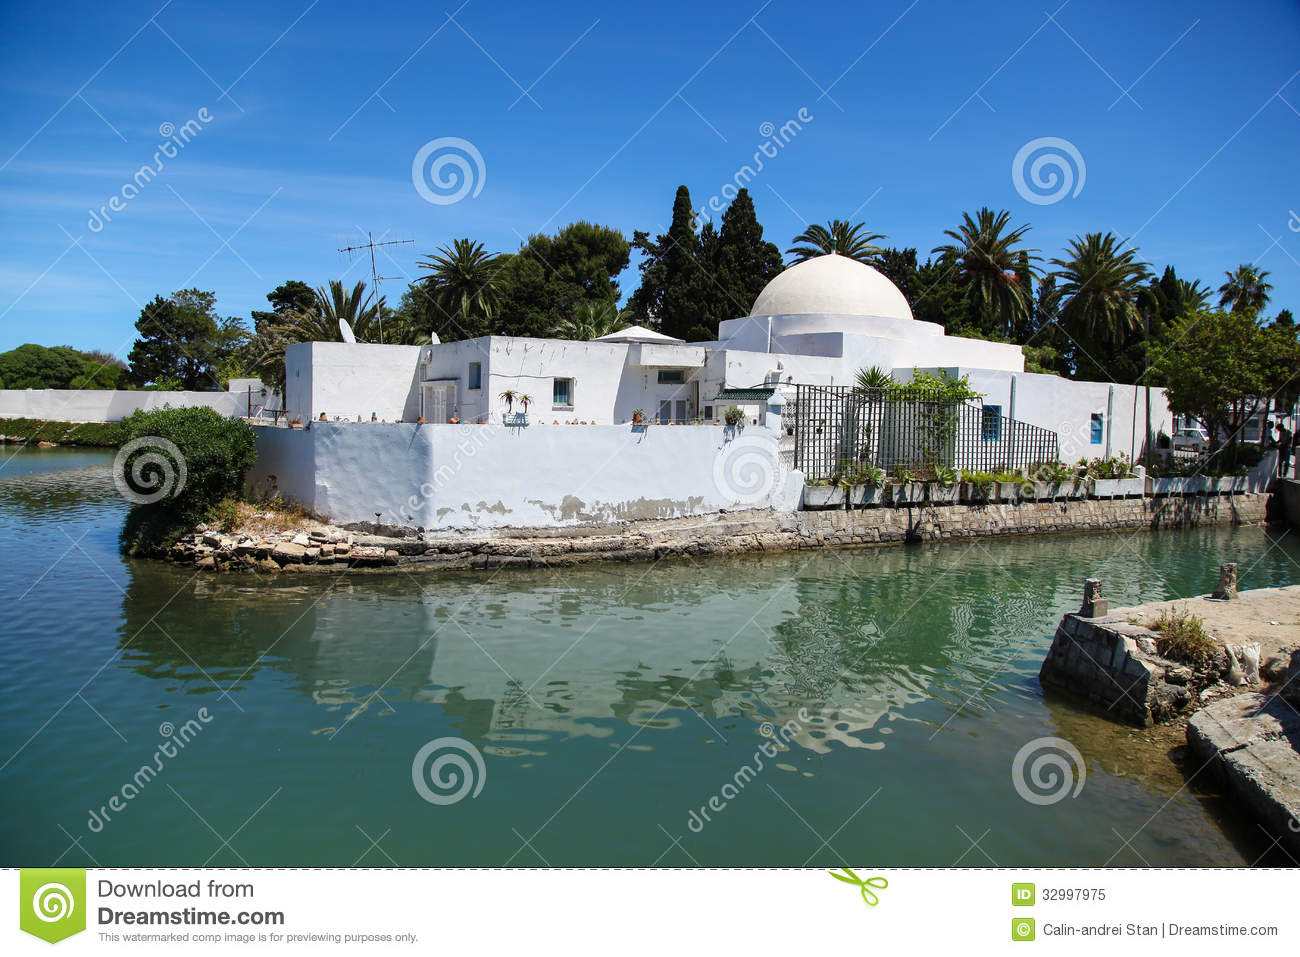 Maison arabe traditionnelle en tunisie lac carthage image for Architecture maison arabe